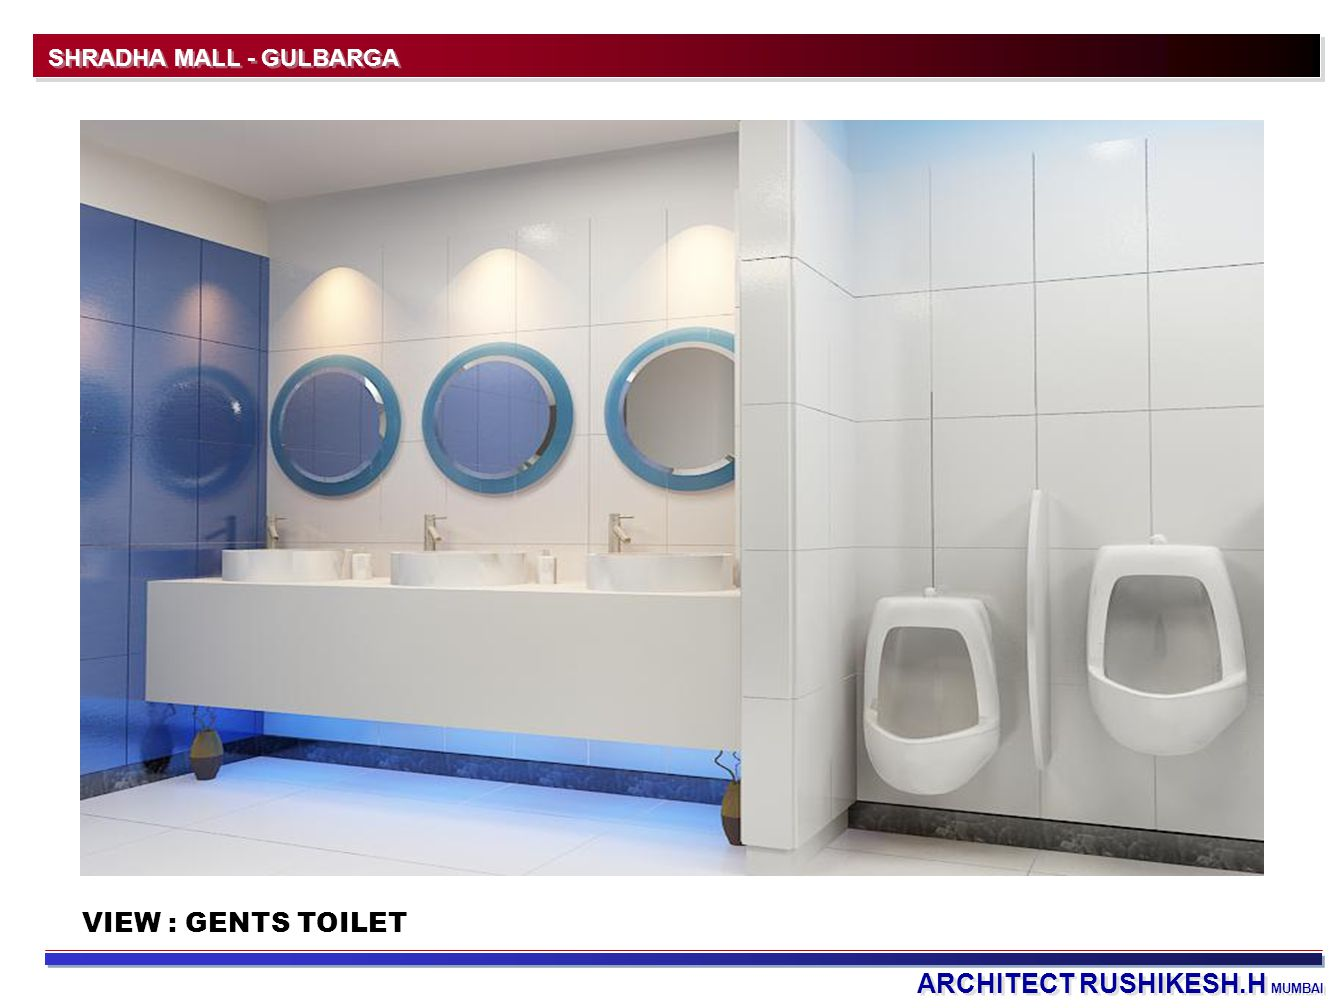 ARCHITECT RUSHIKESH.H MUMBAI SHRADHA MALL - GULBARGA VIEW : GENTS TOILET